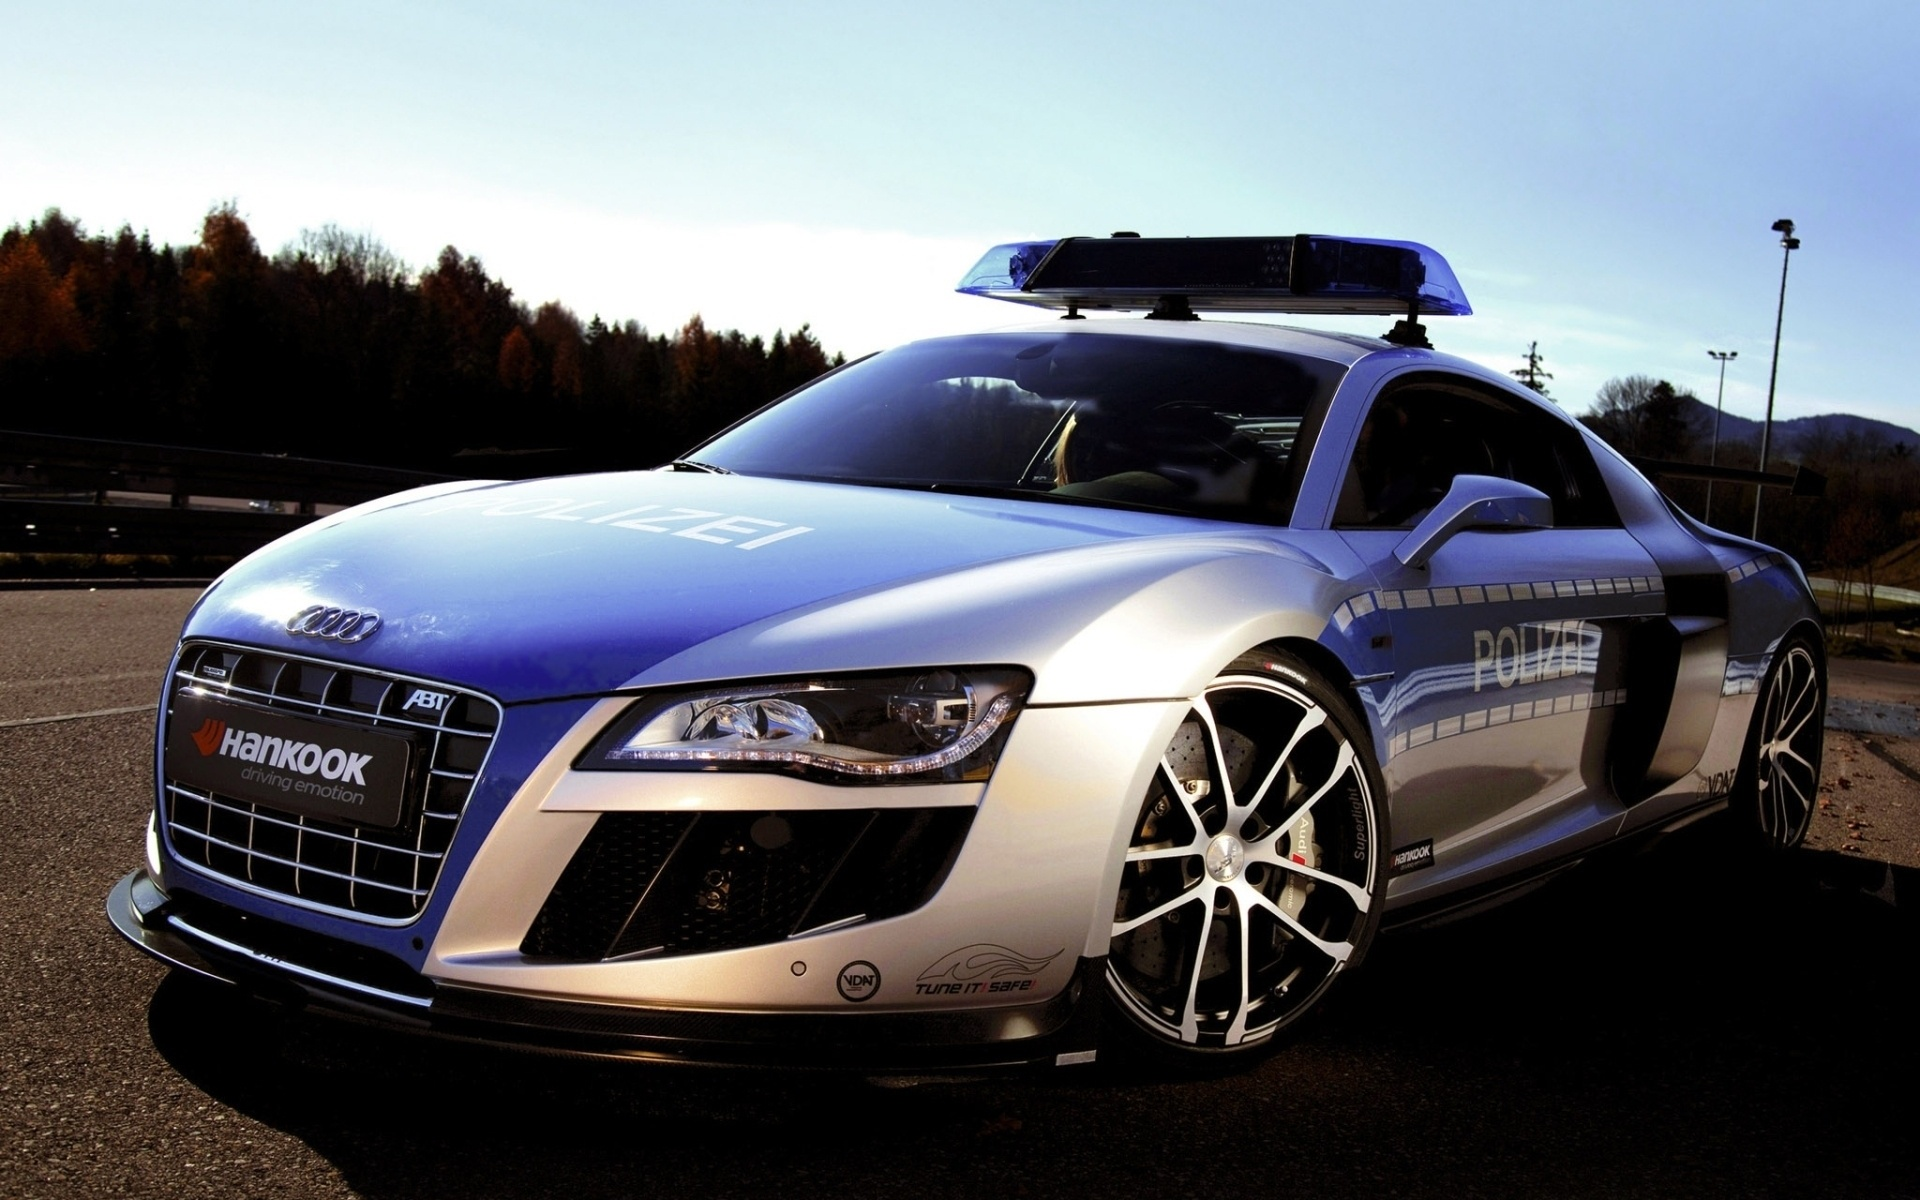 f8 police car car Wallpaper Car Wallpaper Background Desktop Car 1920x1200